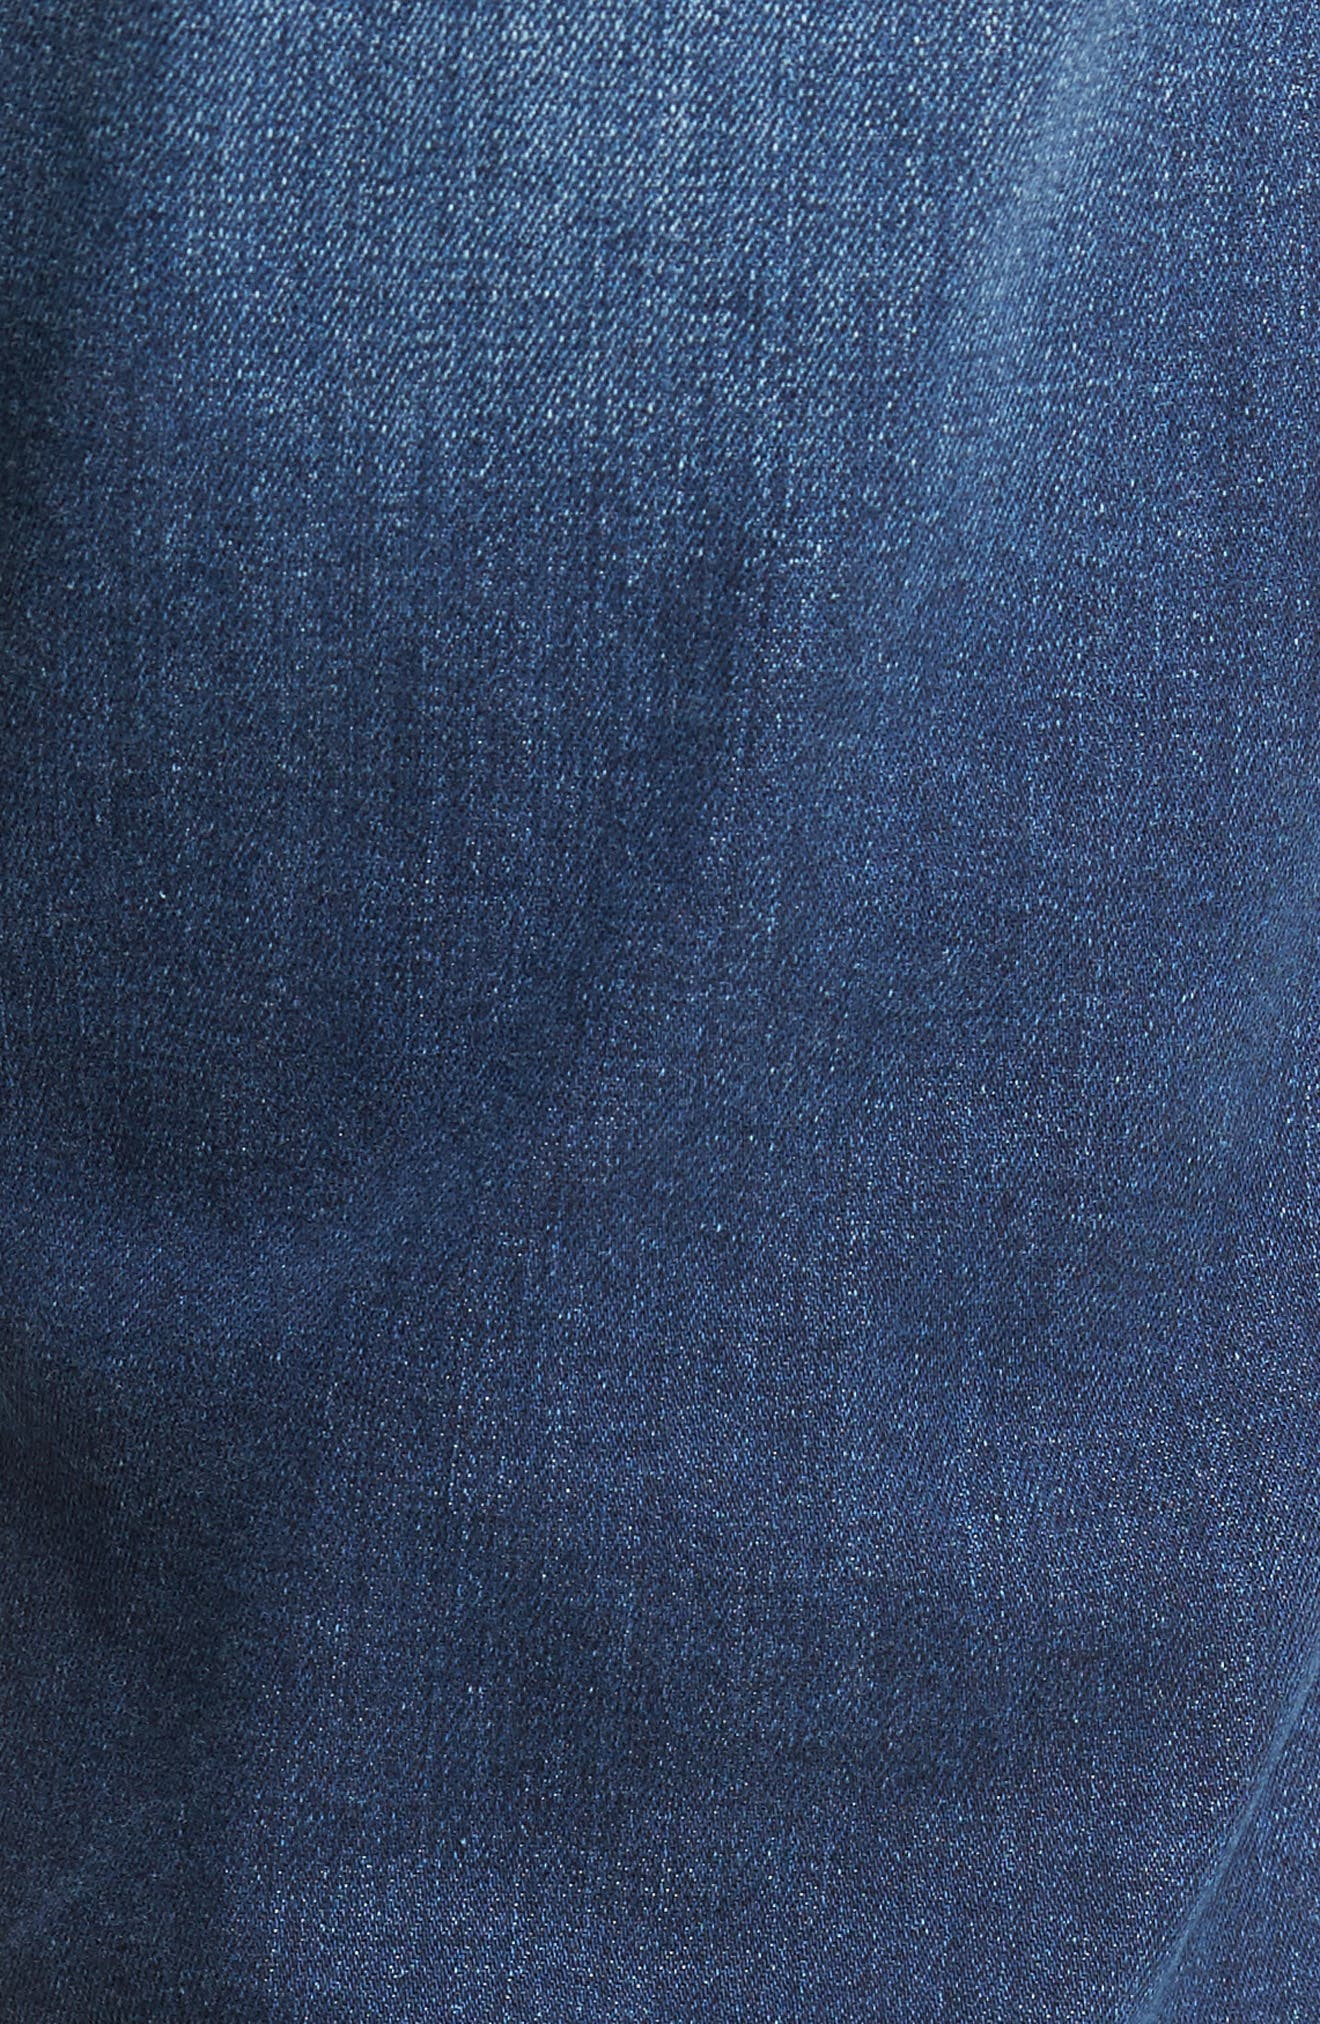 Myles Straight Fit Jeans,                             Alternate thumbnail 5, color,                             401